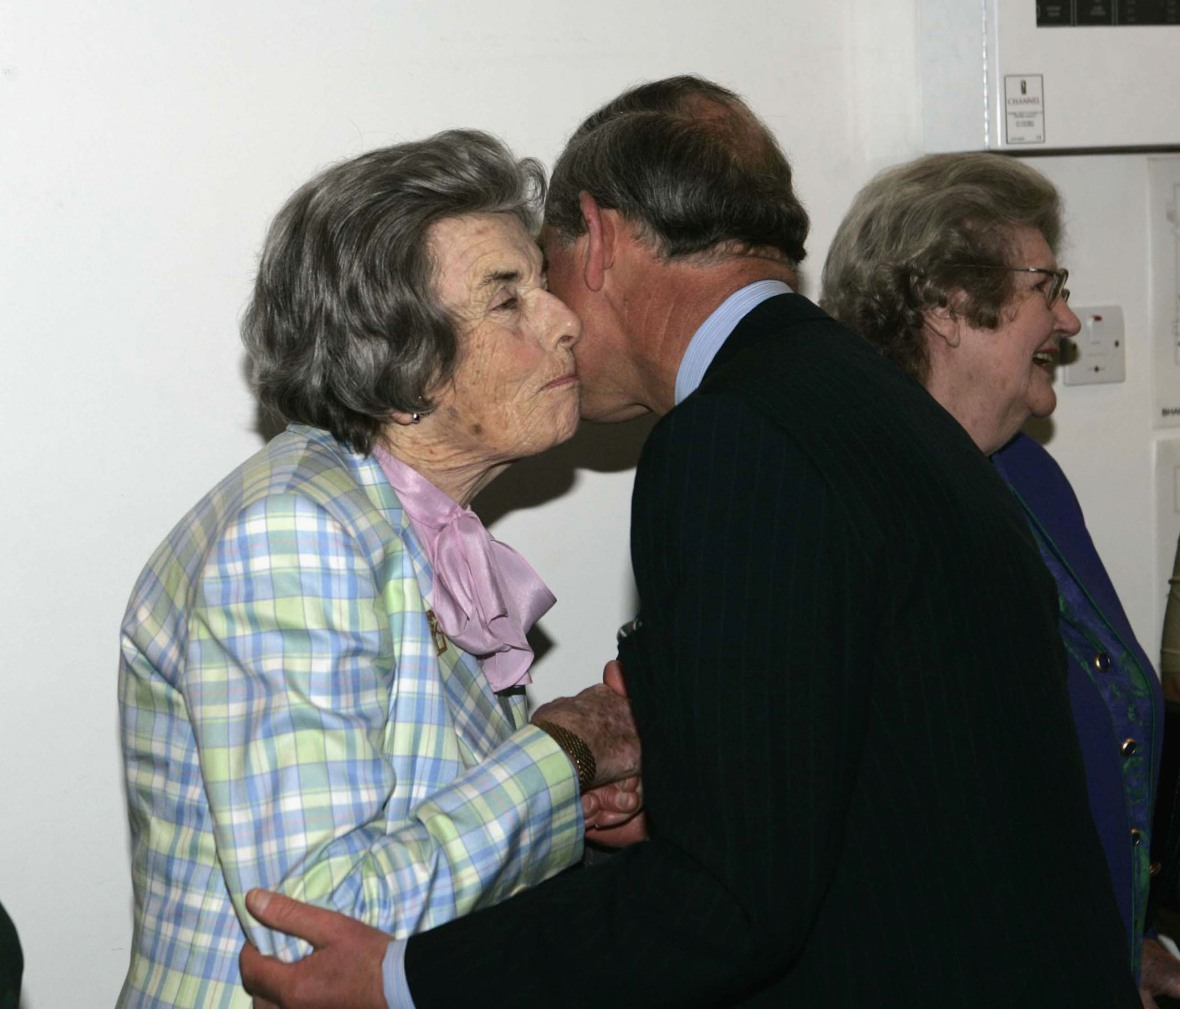 prince charles & his godmother getty